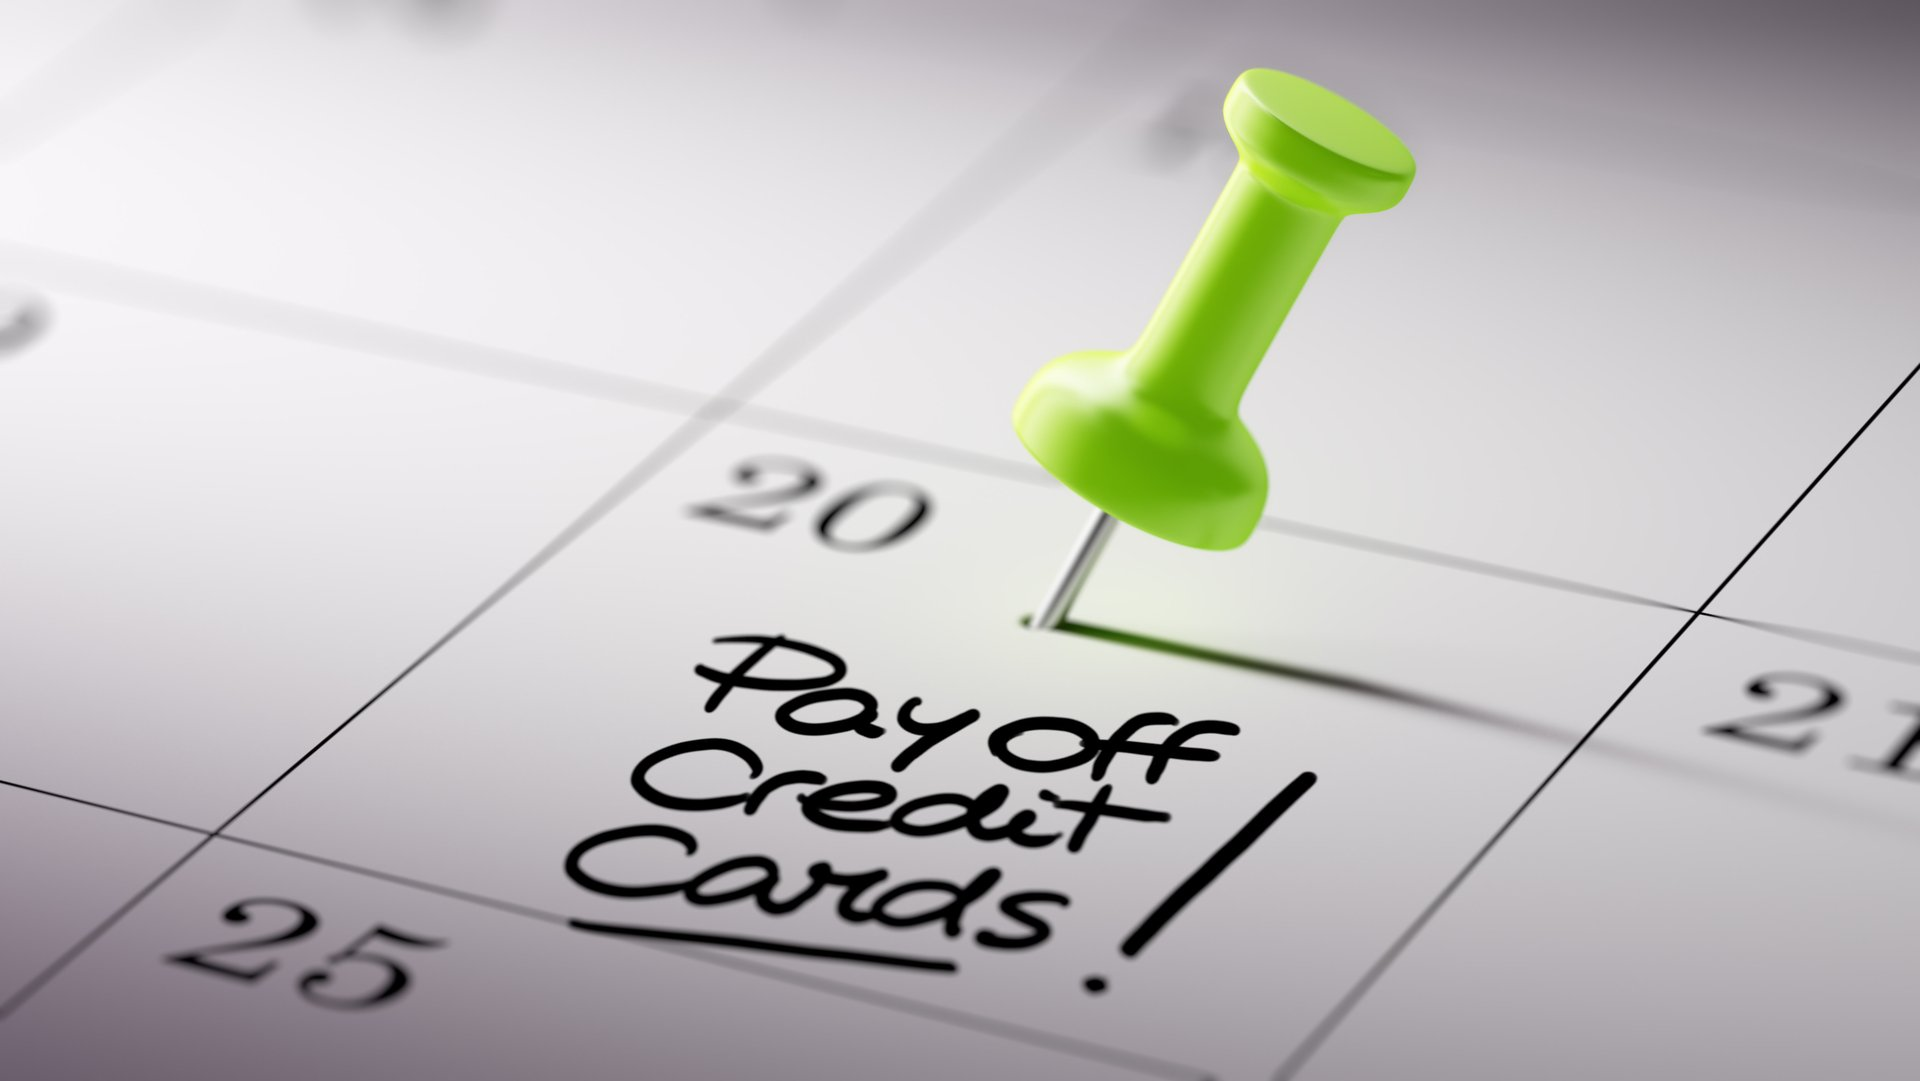 """Calendar with pushpin on """"payoff credit cards"""" note"""